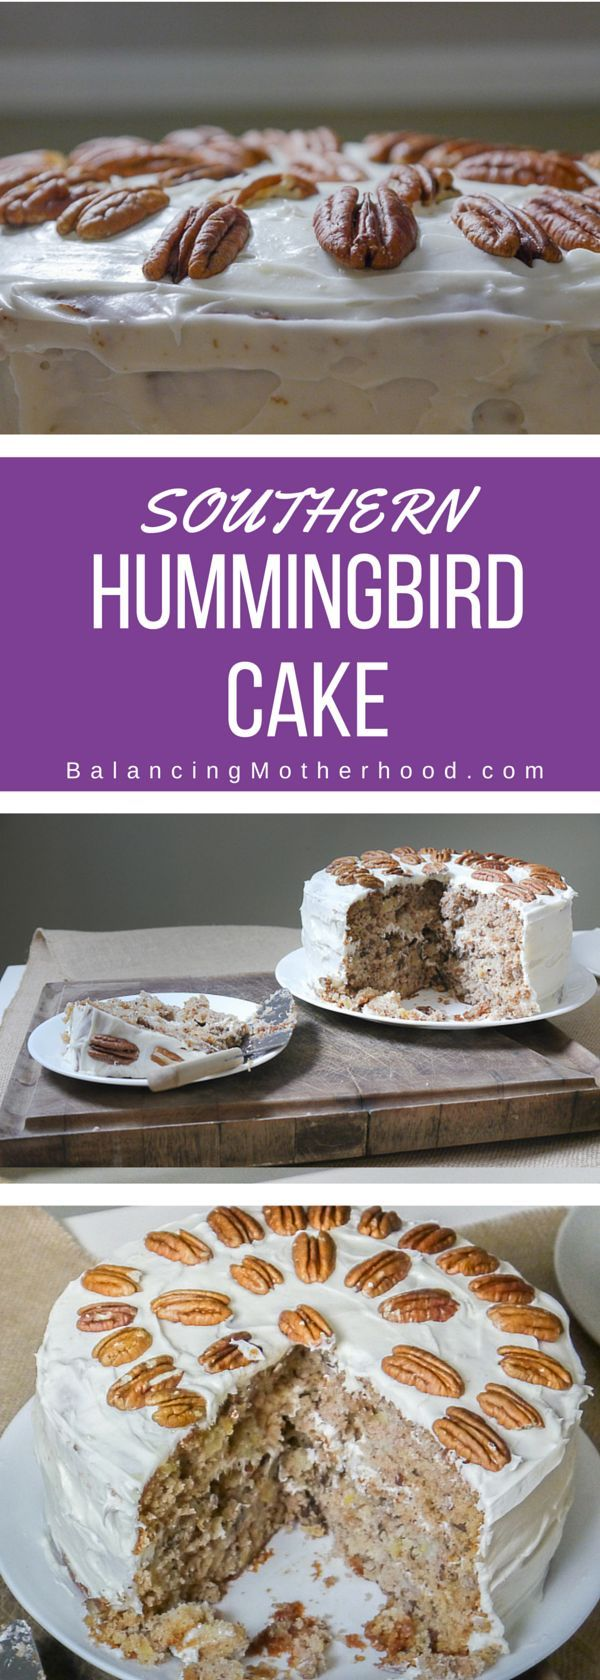 Southern Living's most requested recipe EVER is this southern Hummingbird Cake recipe. Moist and delicious, it's really easy to make and a total winner! Get the recipe. Hummingbird cake southern living